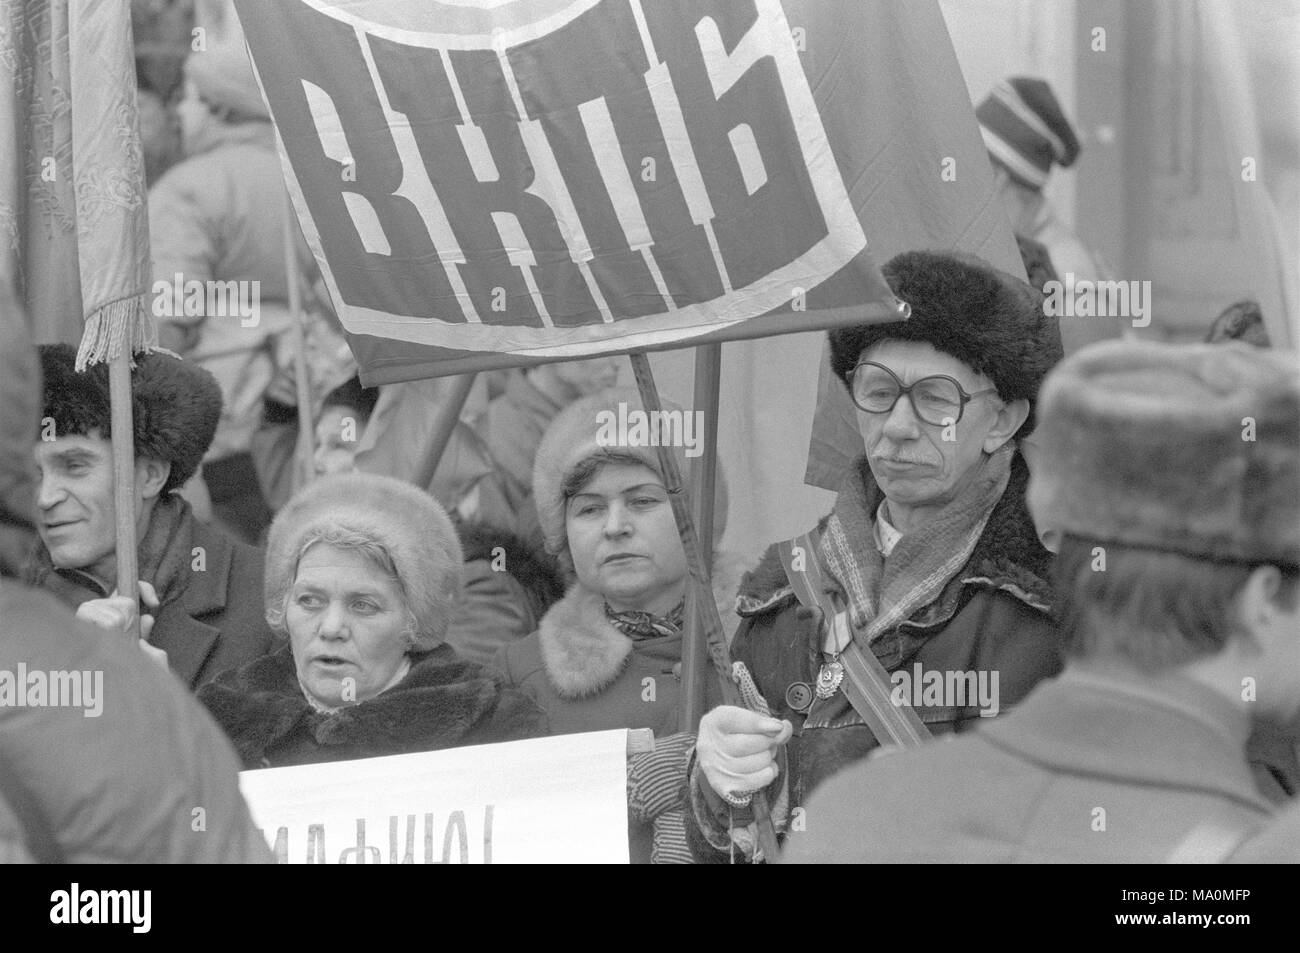 Moscow, Russia - February 09, 1992: Pro communist rally on Manezh square. The slogan has russian abbreviation for All Union Communist Party of Bolsheviks. - Stock Image